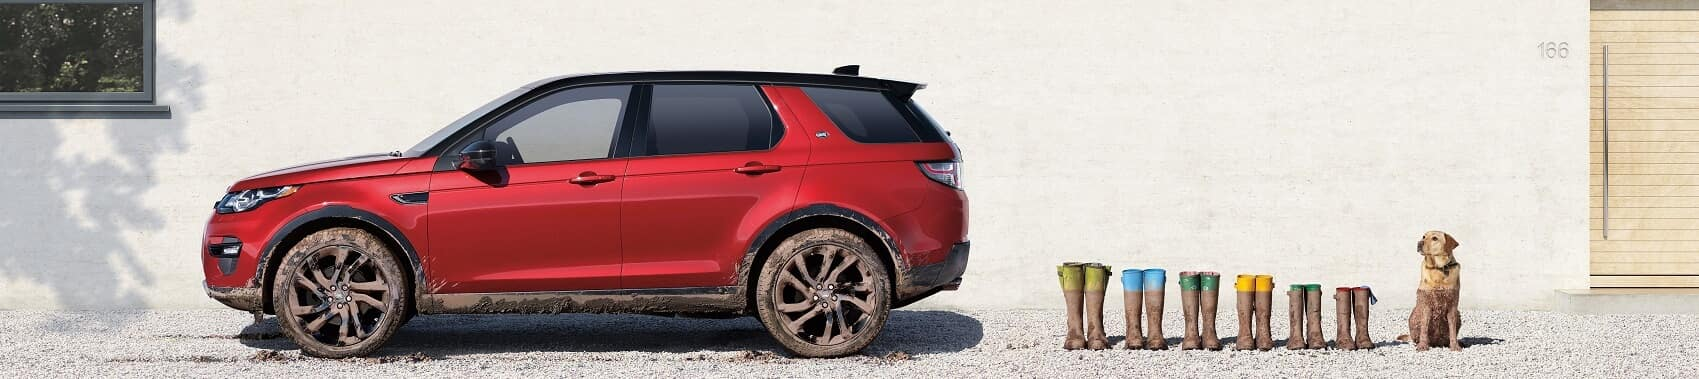 Land Rover Discovery Sport Maintenance Schedule